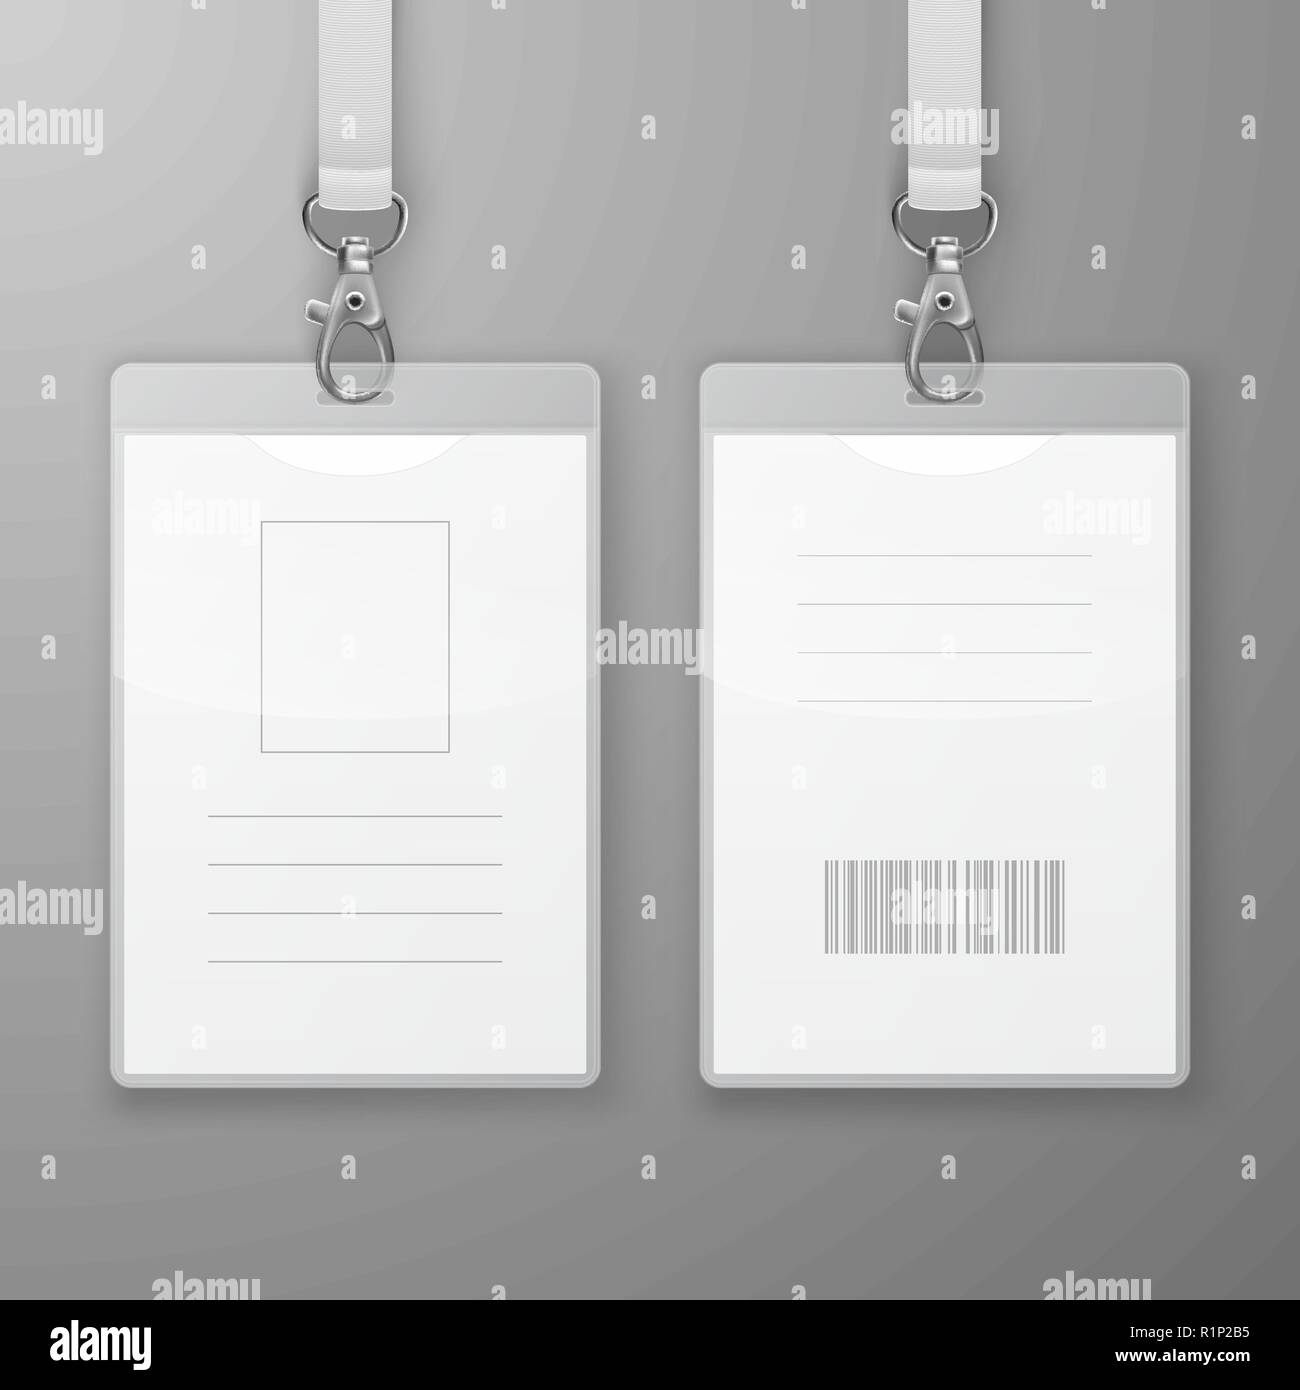 Two Vector Realistic Blank Office Graphic Id Cards with Clasp and Lanyard Closeup Isolated. Front and Back Side. Design Template of Identification Card for Mockup. Identity Card Mock-up in Top View - Stock Image